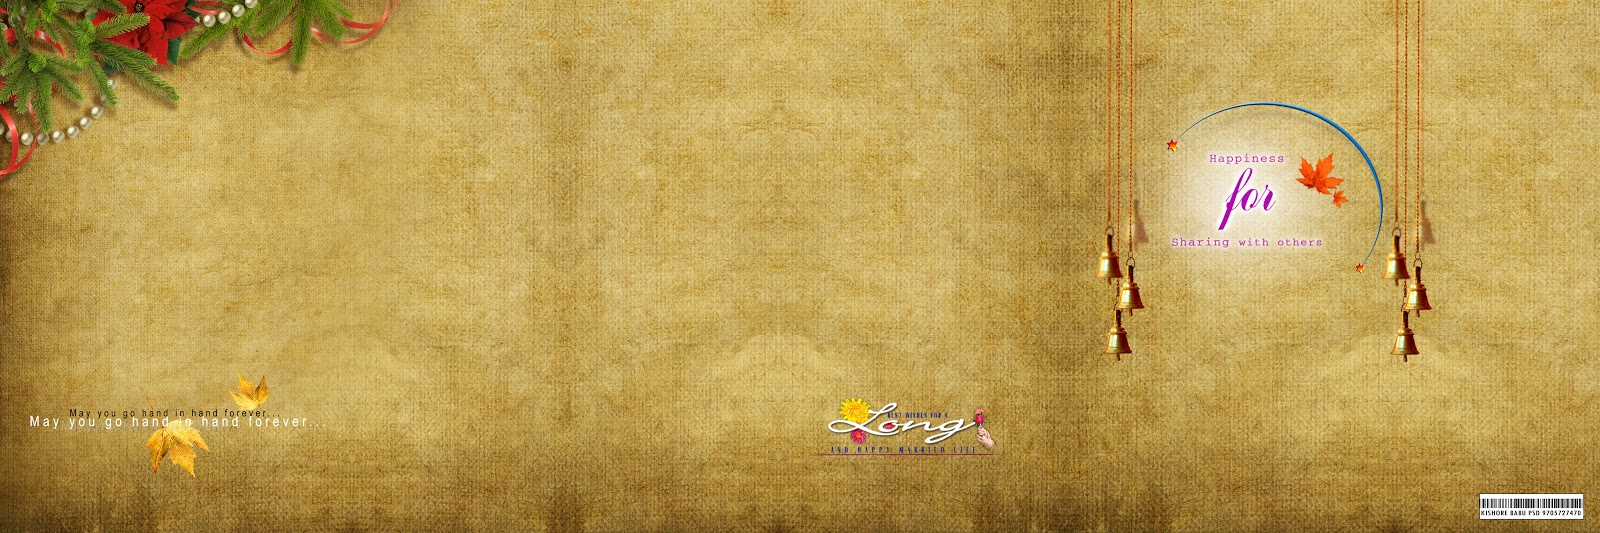 7 Psds Backgrounds 12x36 Works Creations Images Free